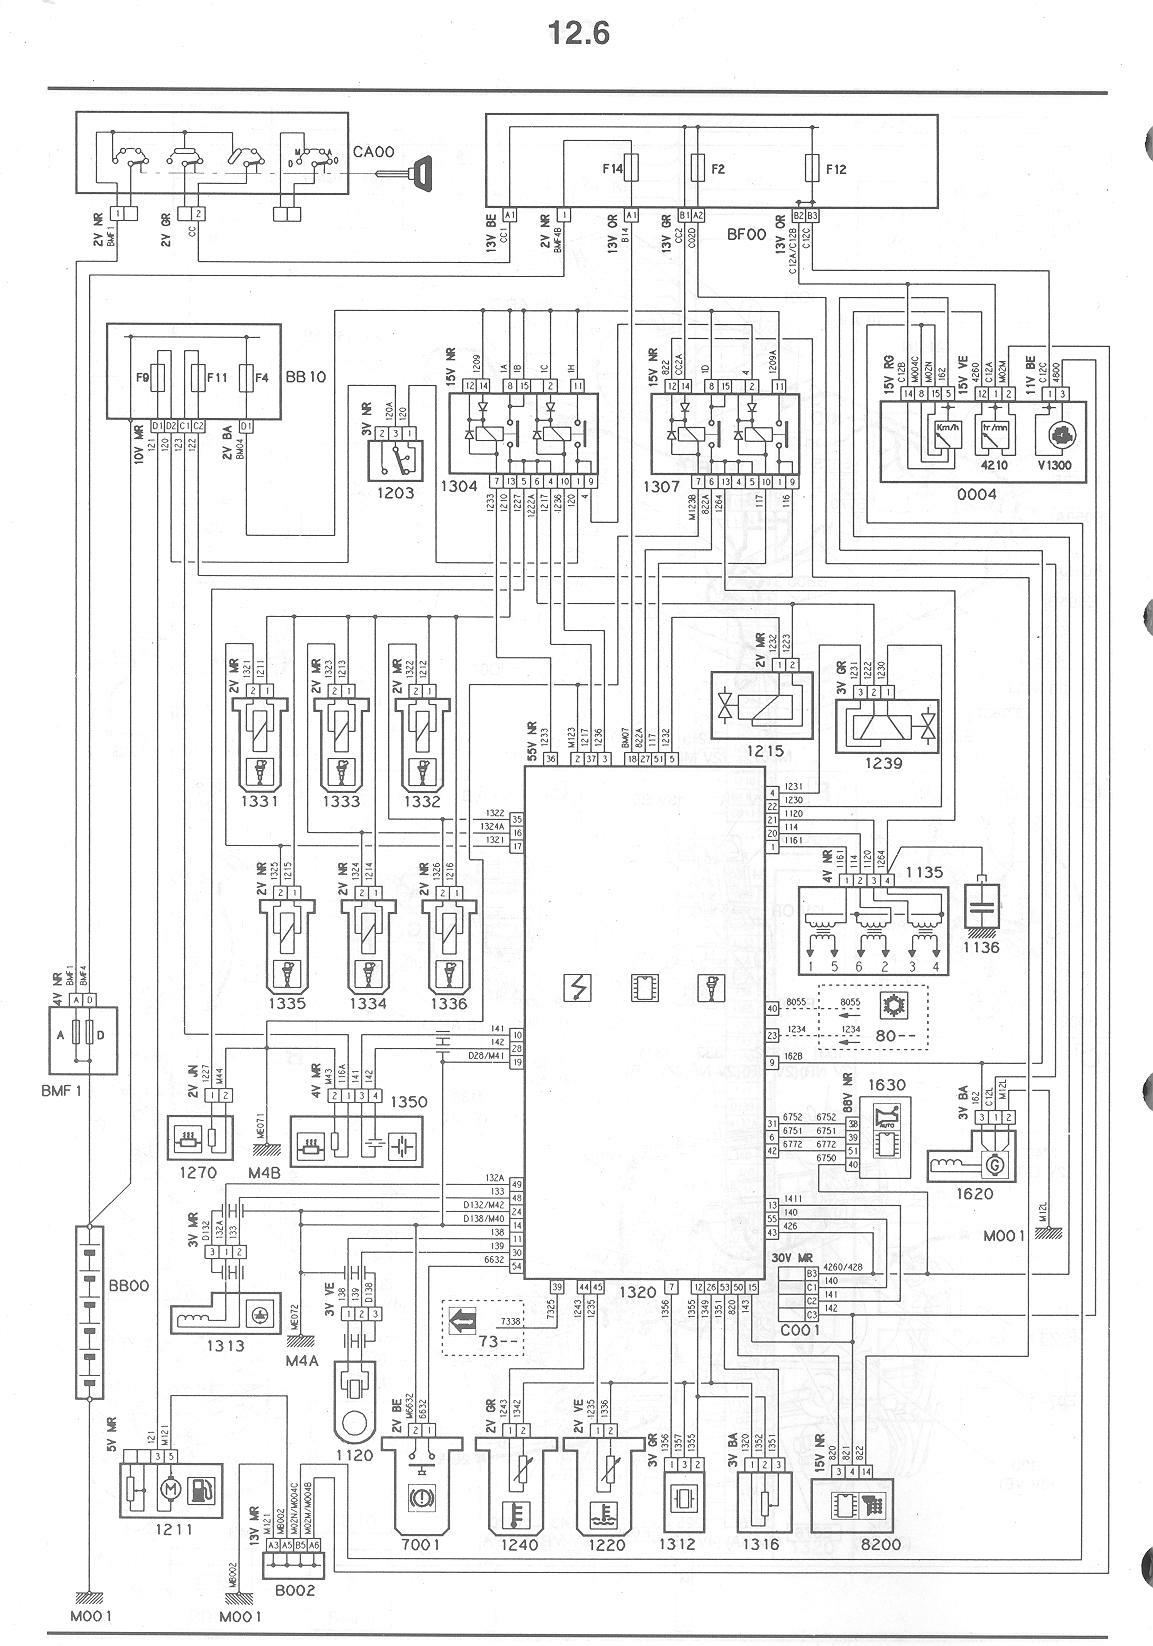 [DIAGRAM] Haynes Wiring Diagram Citroen Xantia FULL